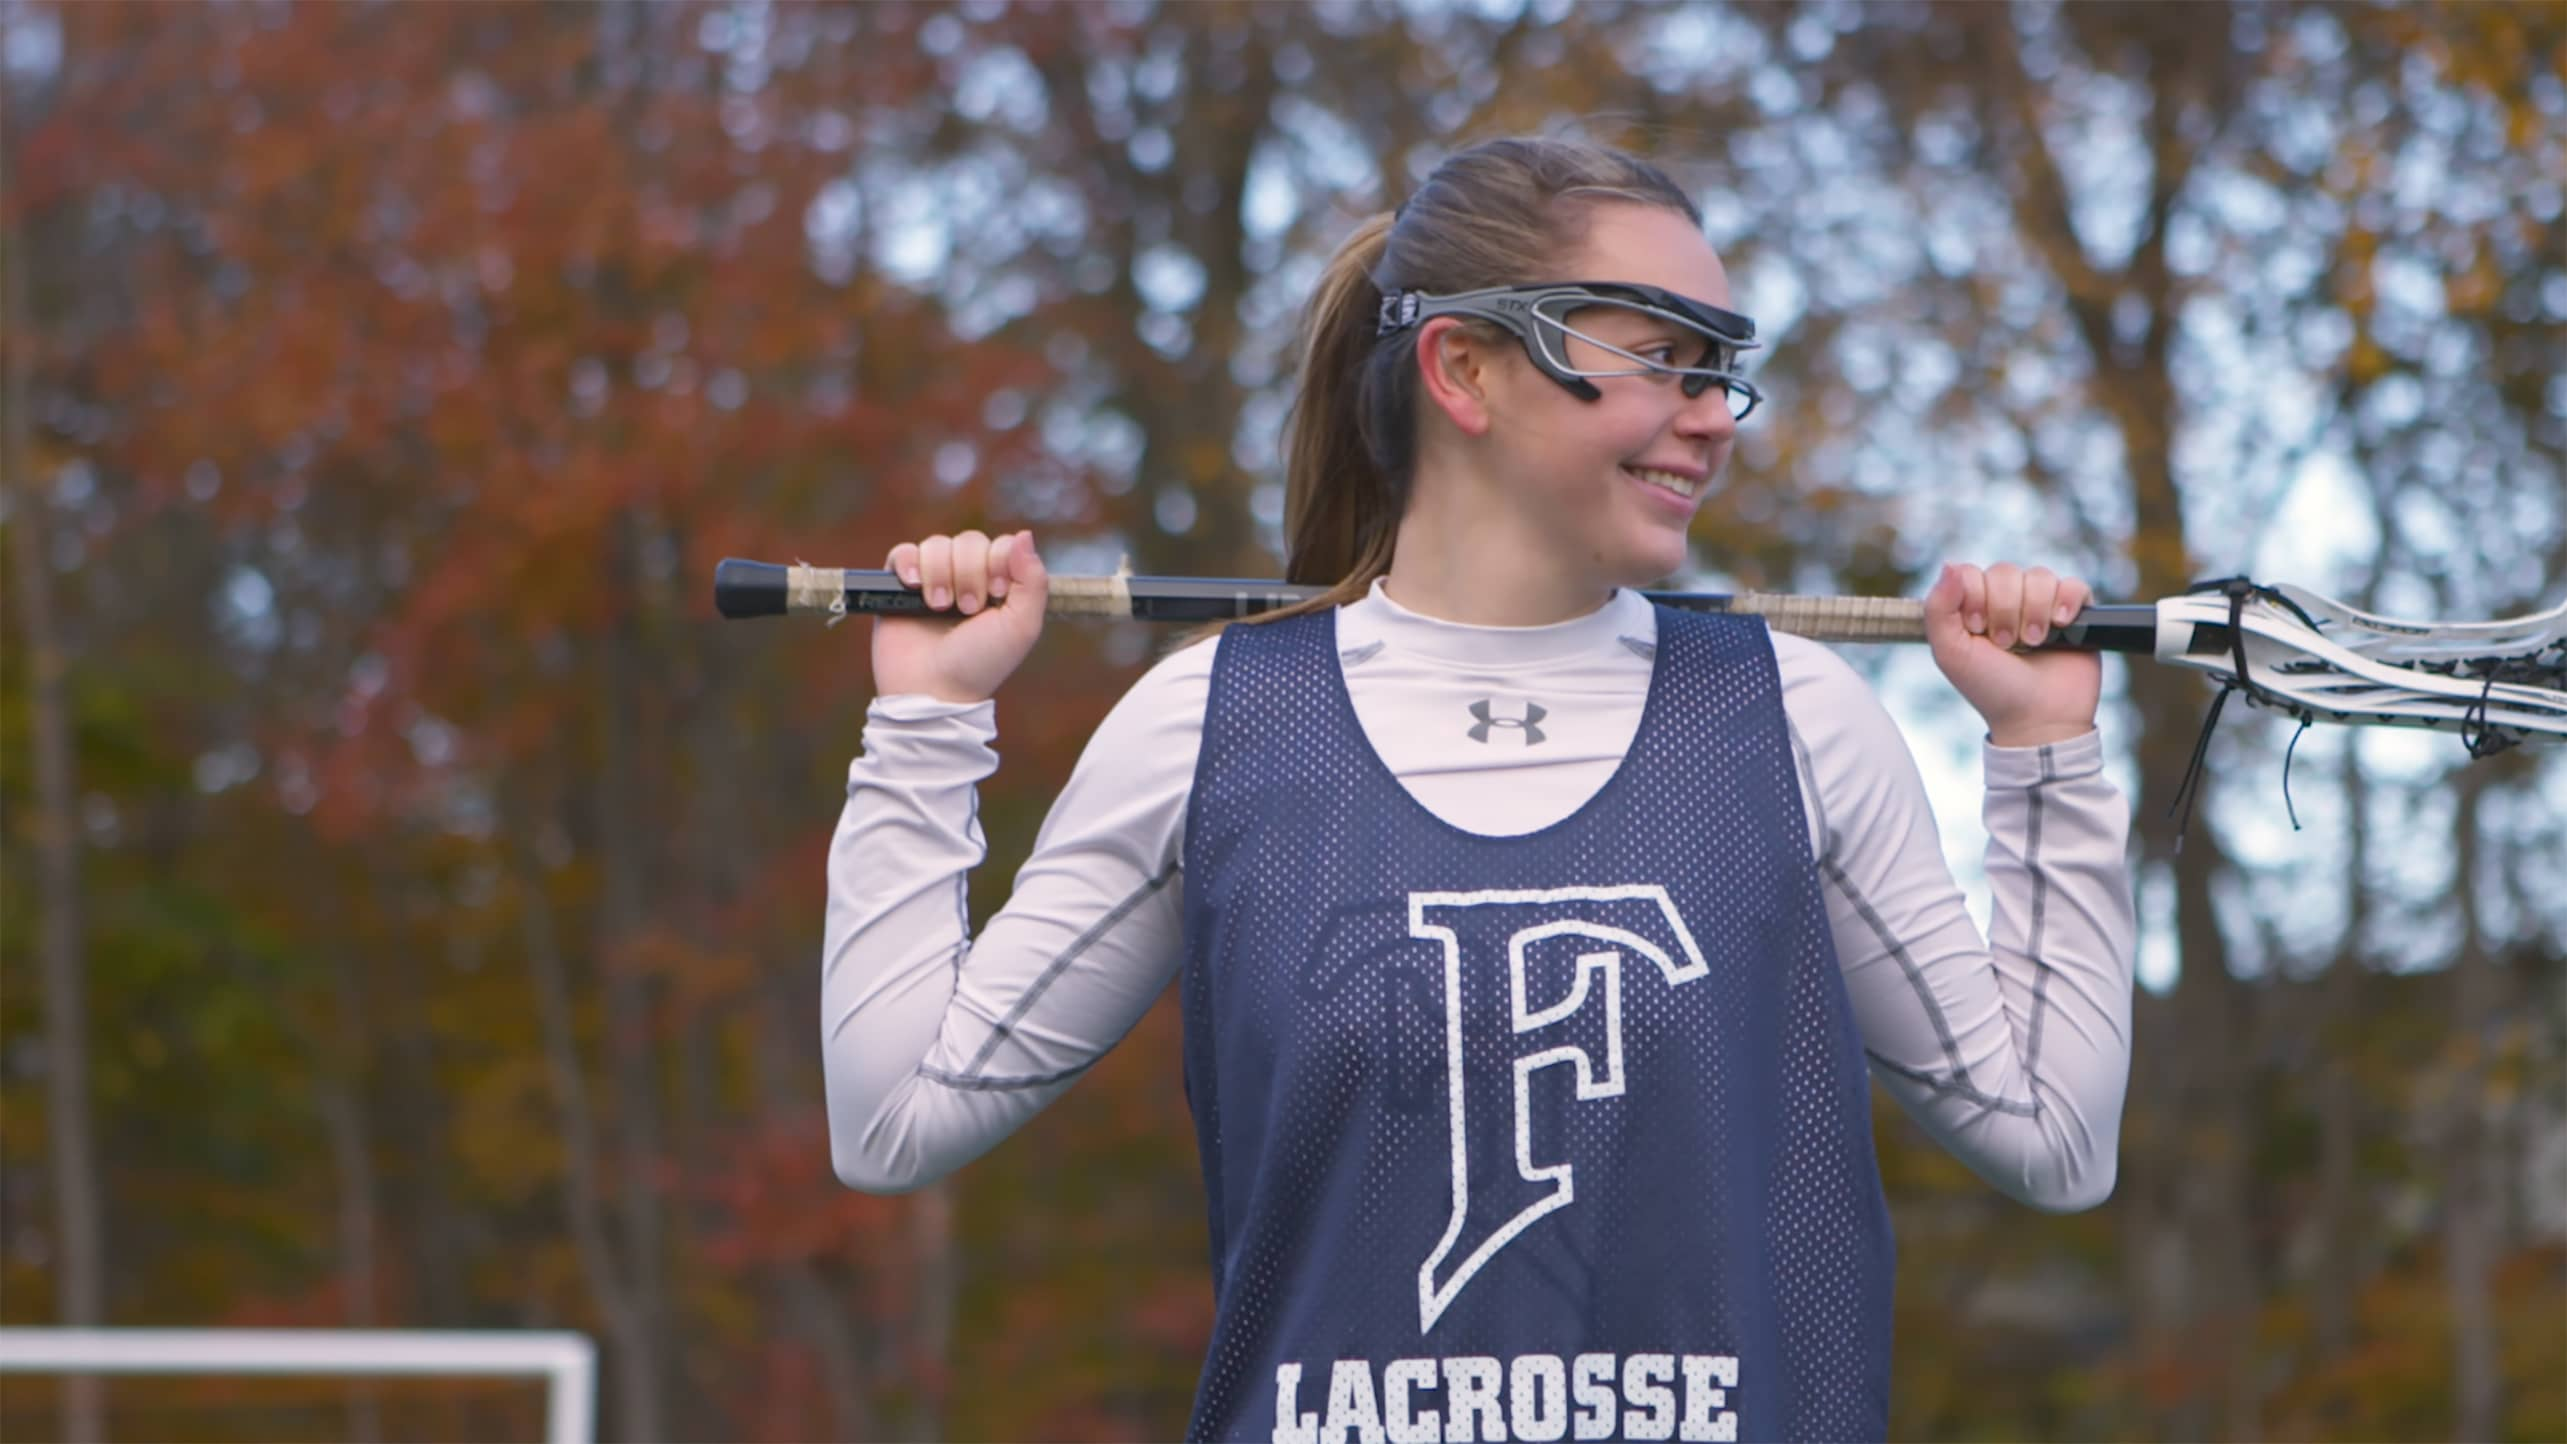 A lacrosse player holding her lacrosse stick.